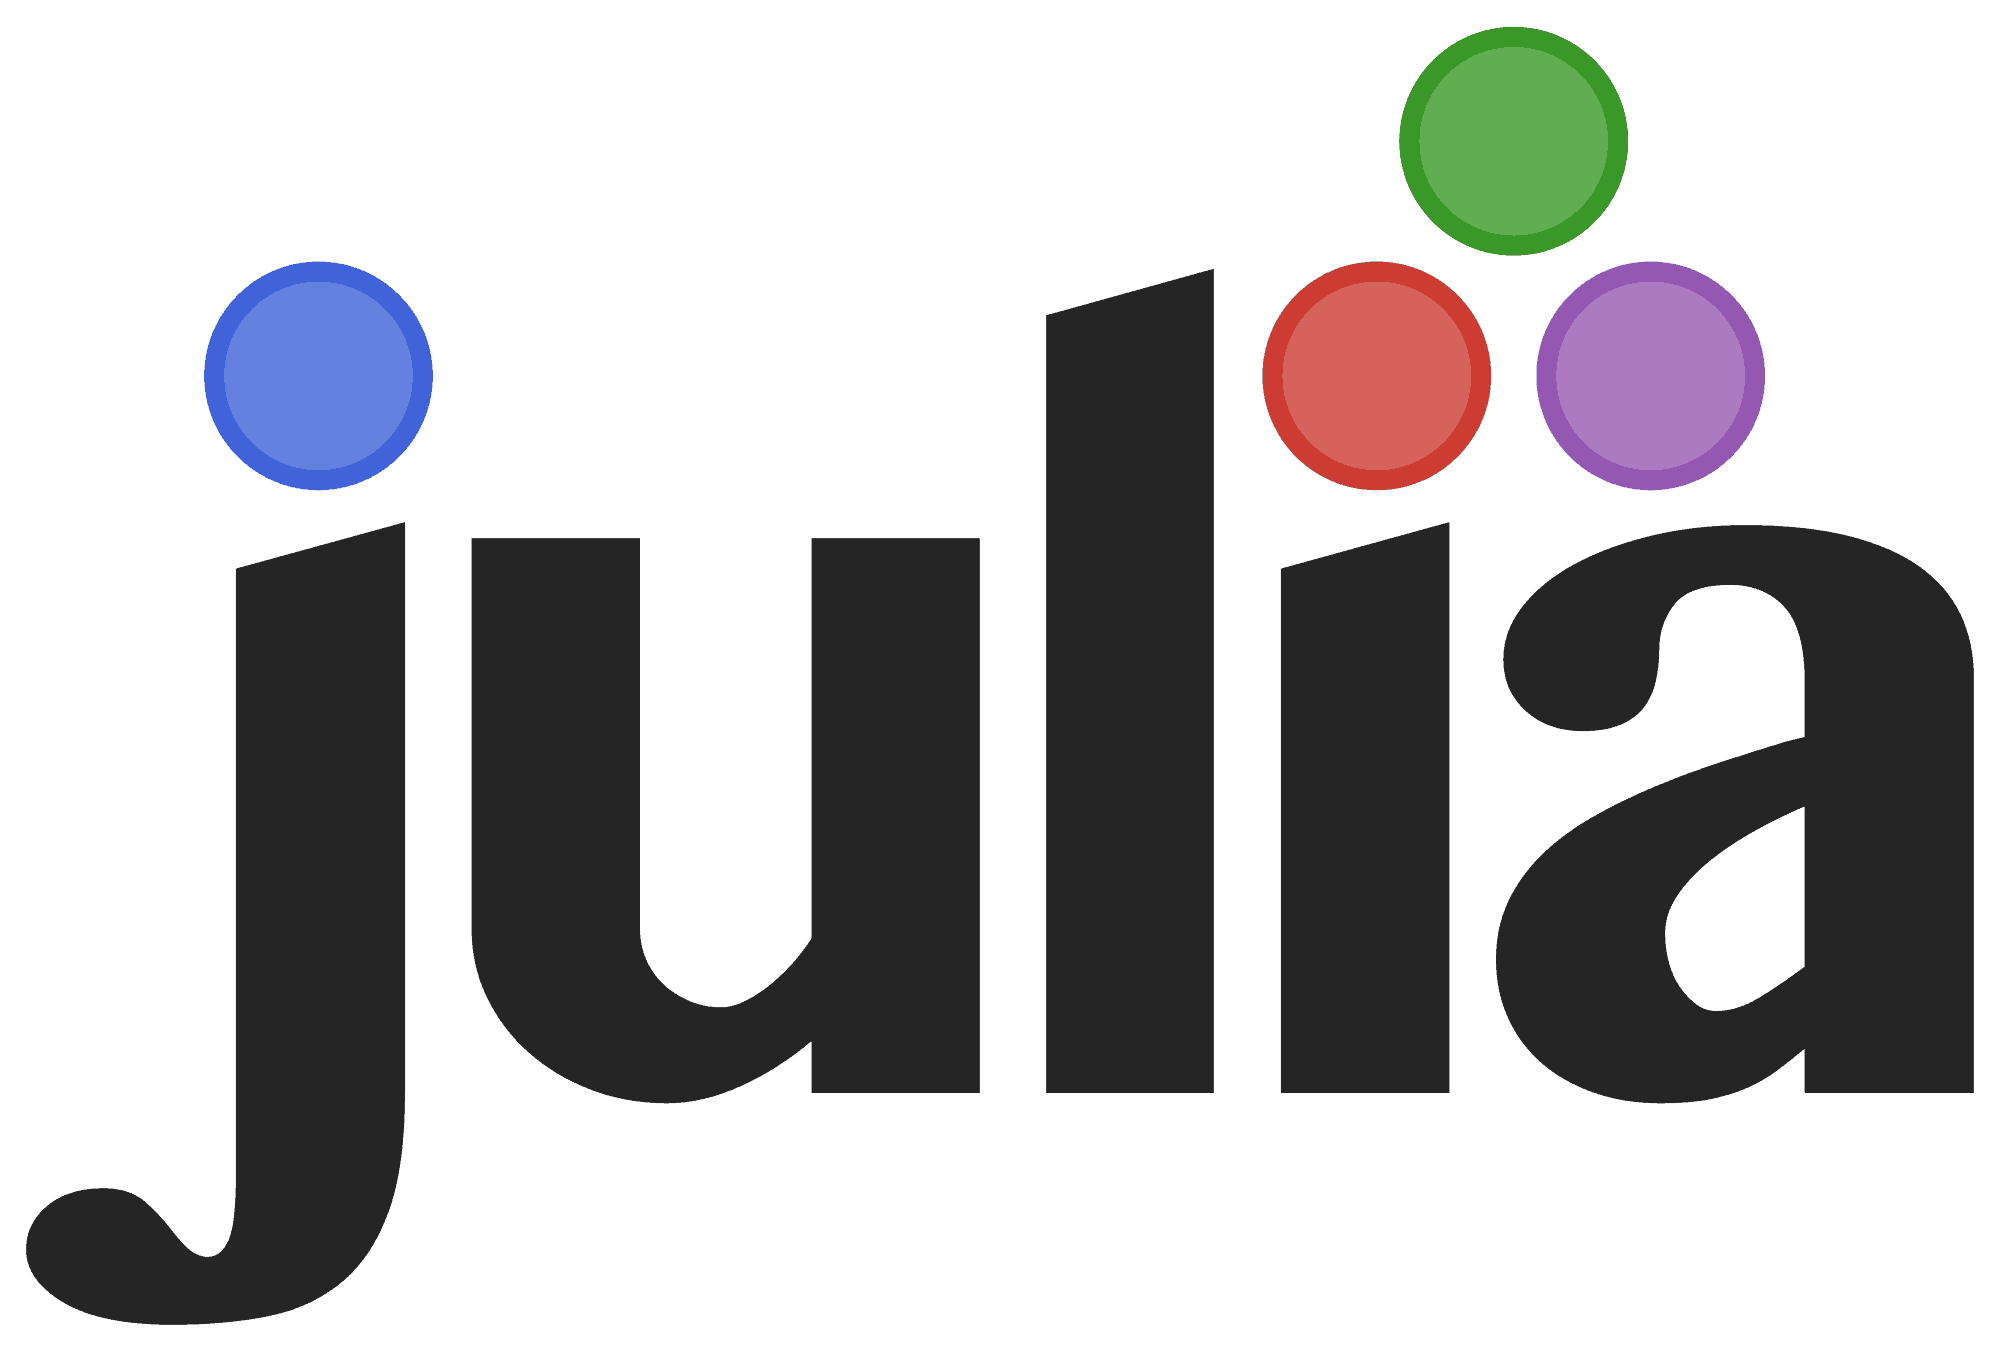 julia - A Modern Day Computing Language